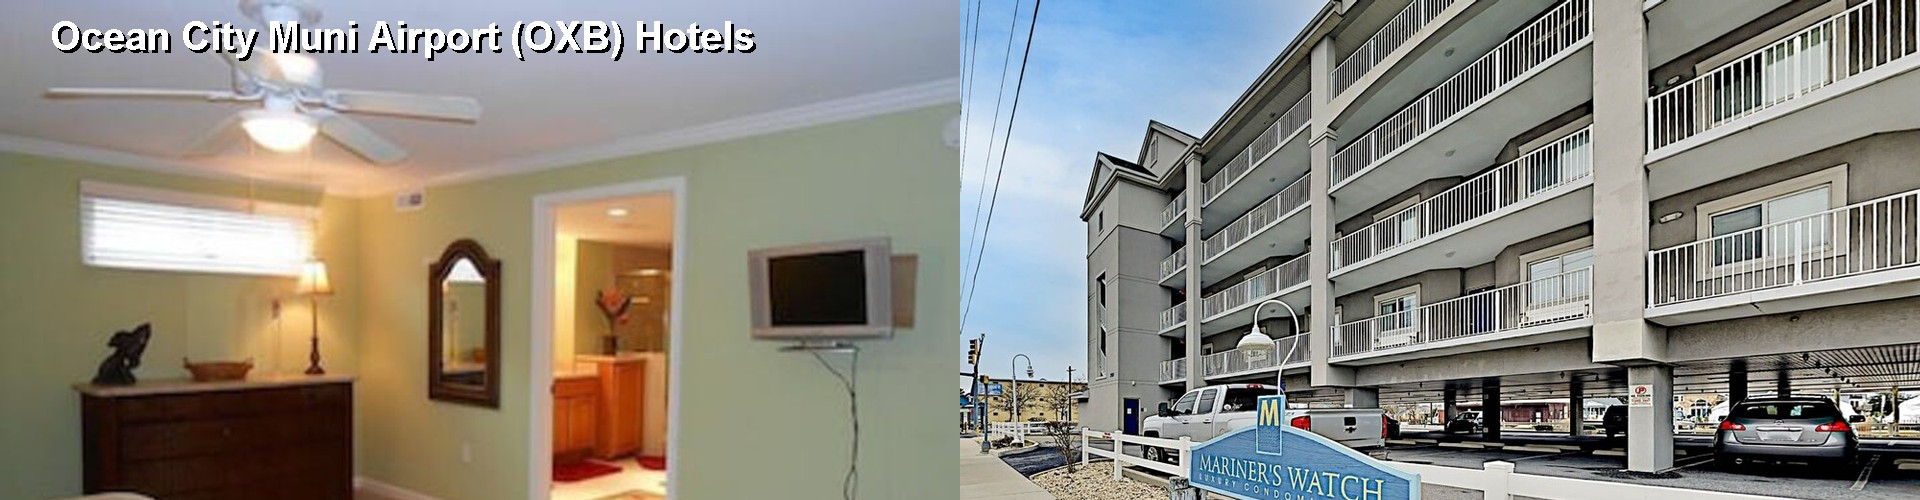 5 Best Hotels near Ocean City Muni Airport (OXB)